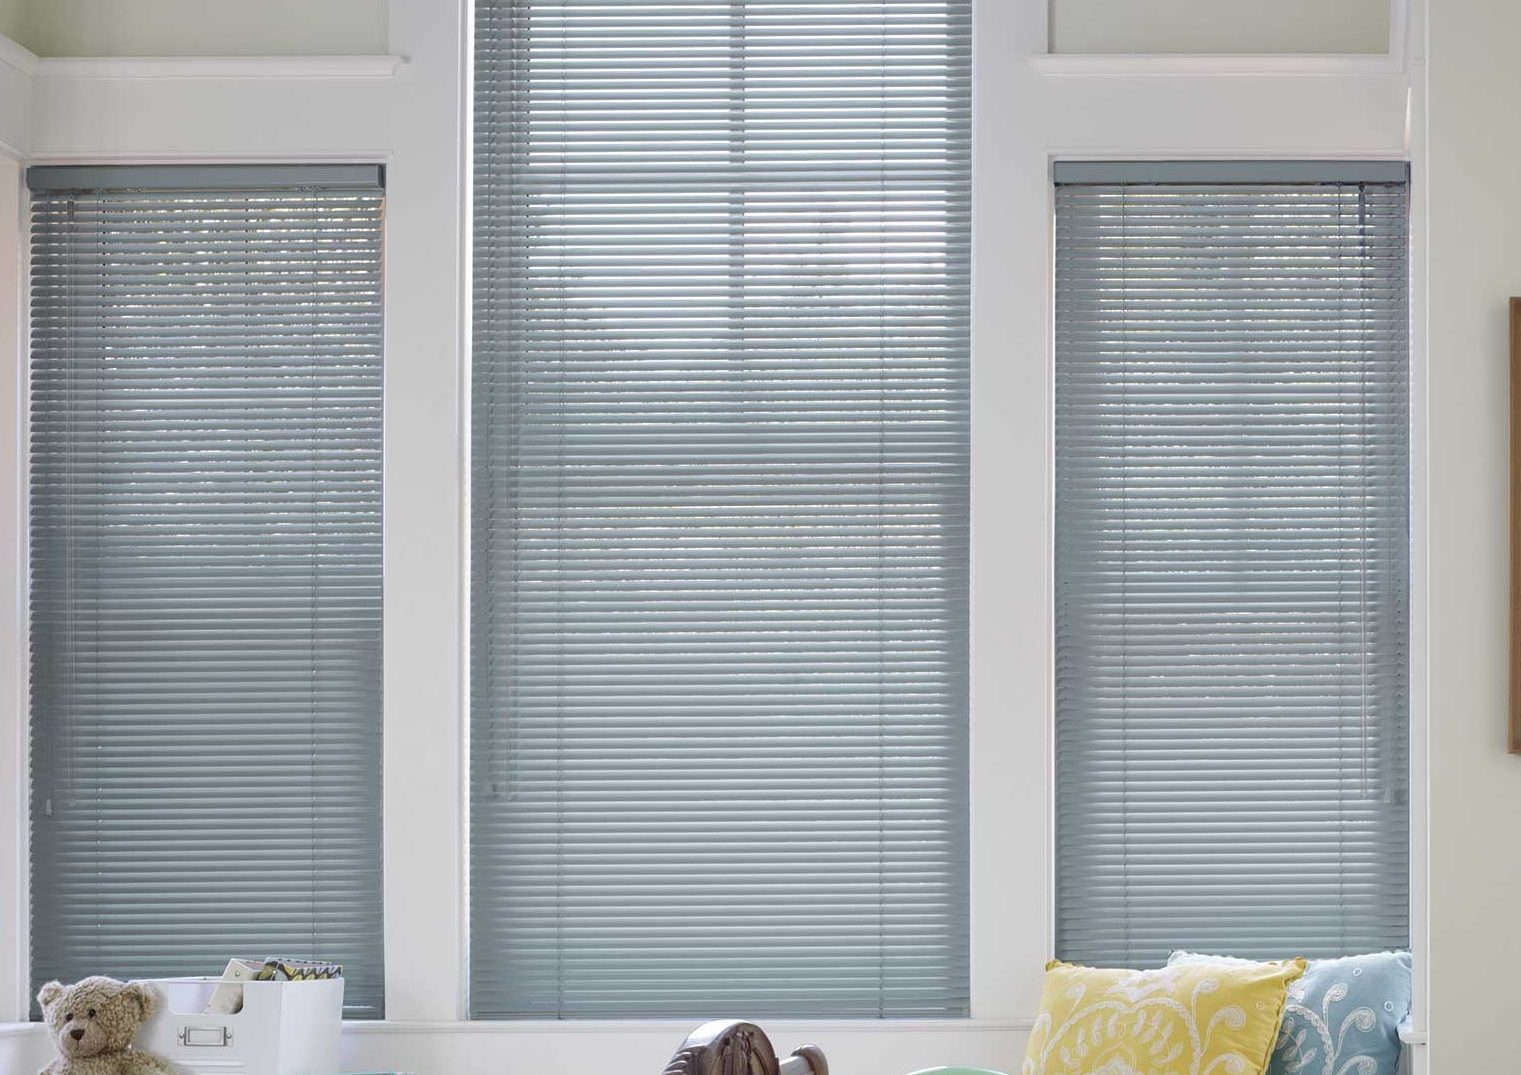 Custom Blinds and Shades - Window Blinds WV - Blind Wizard WV